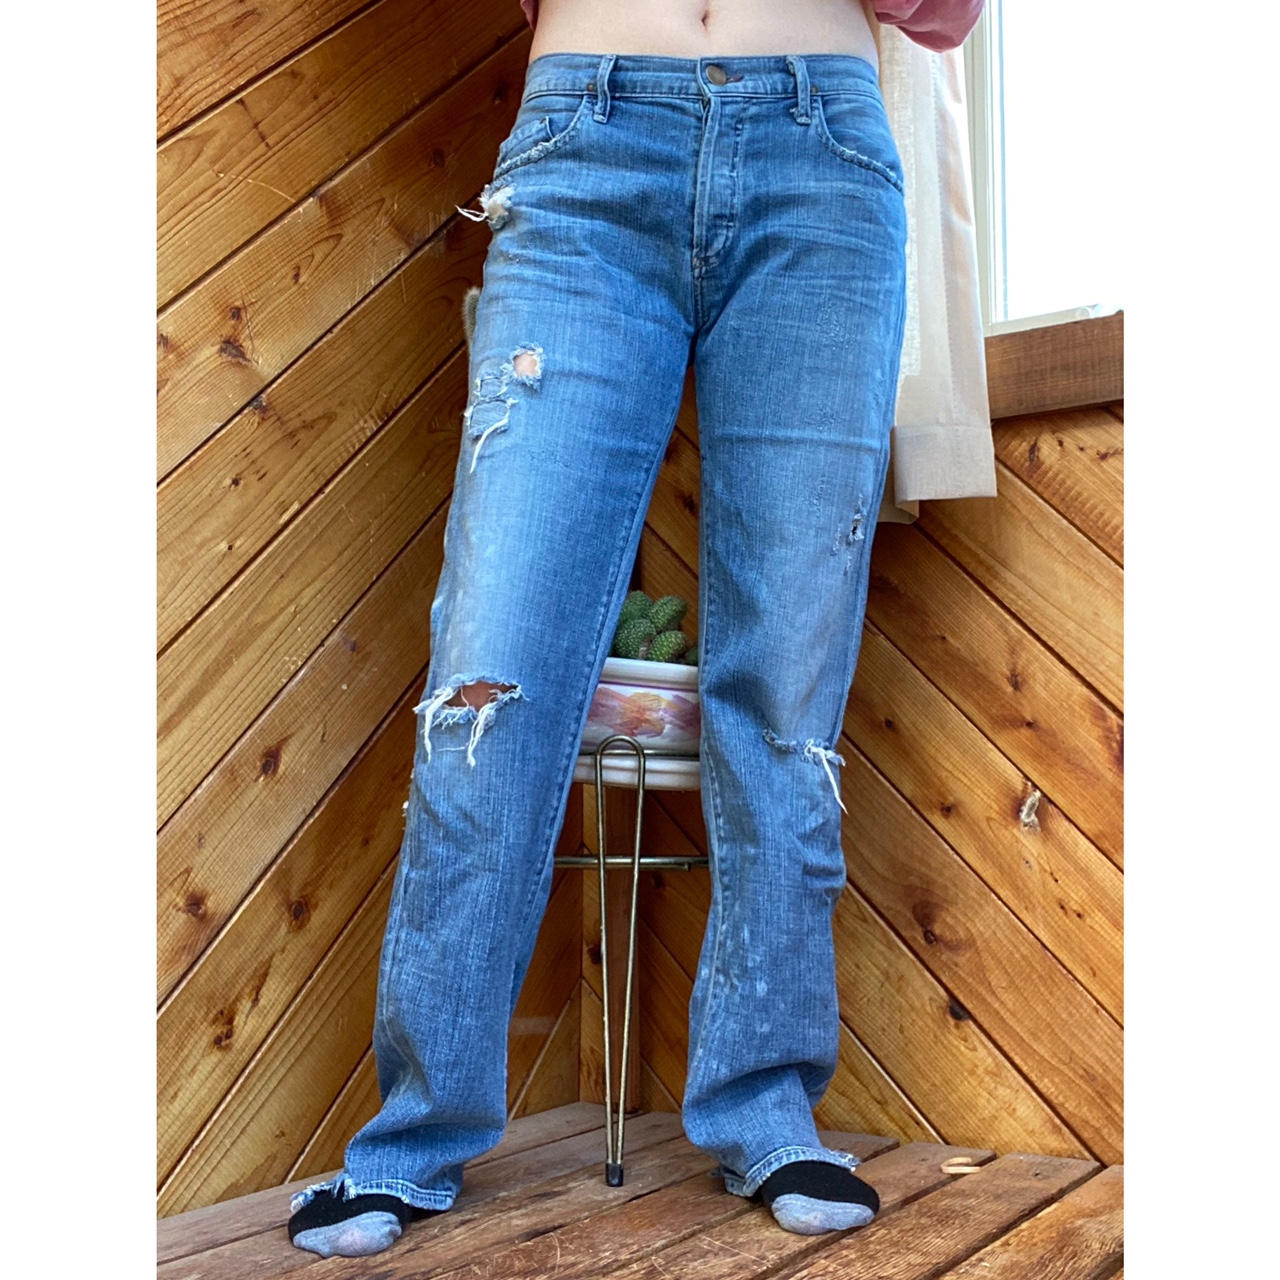 Product Image 1 - Goldsign Mr. Right jeans, women's